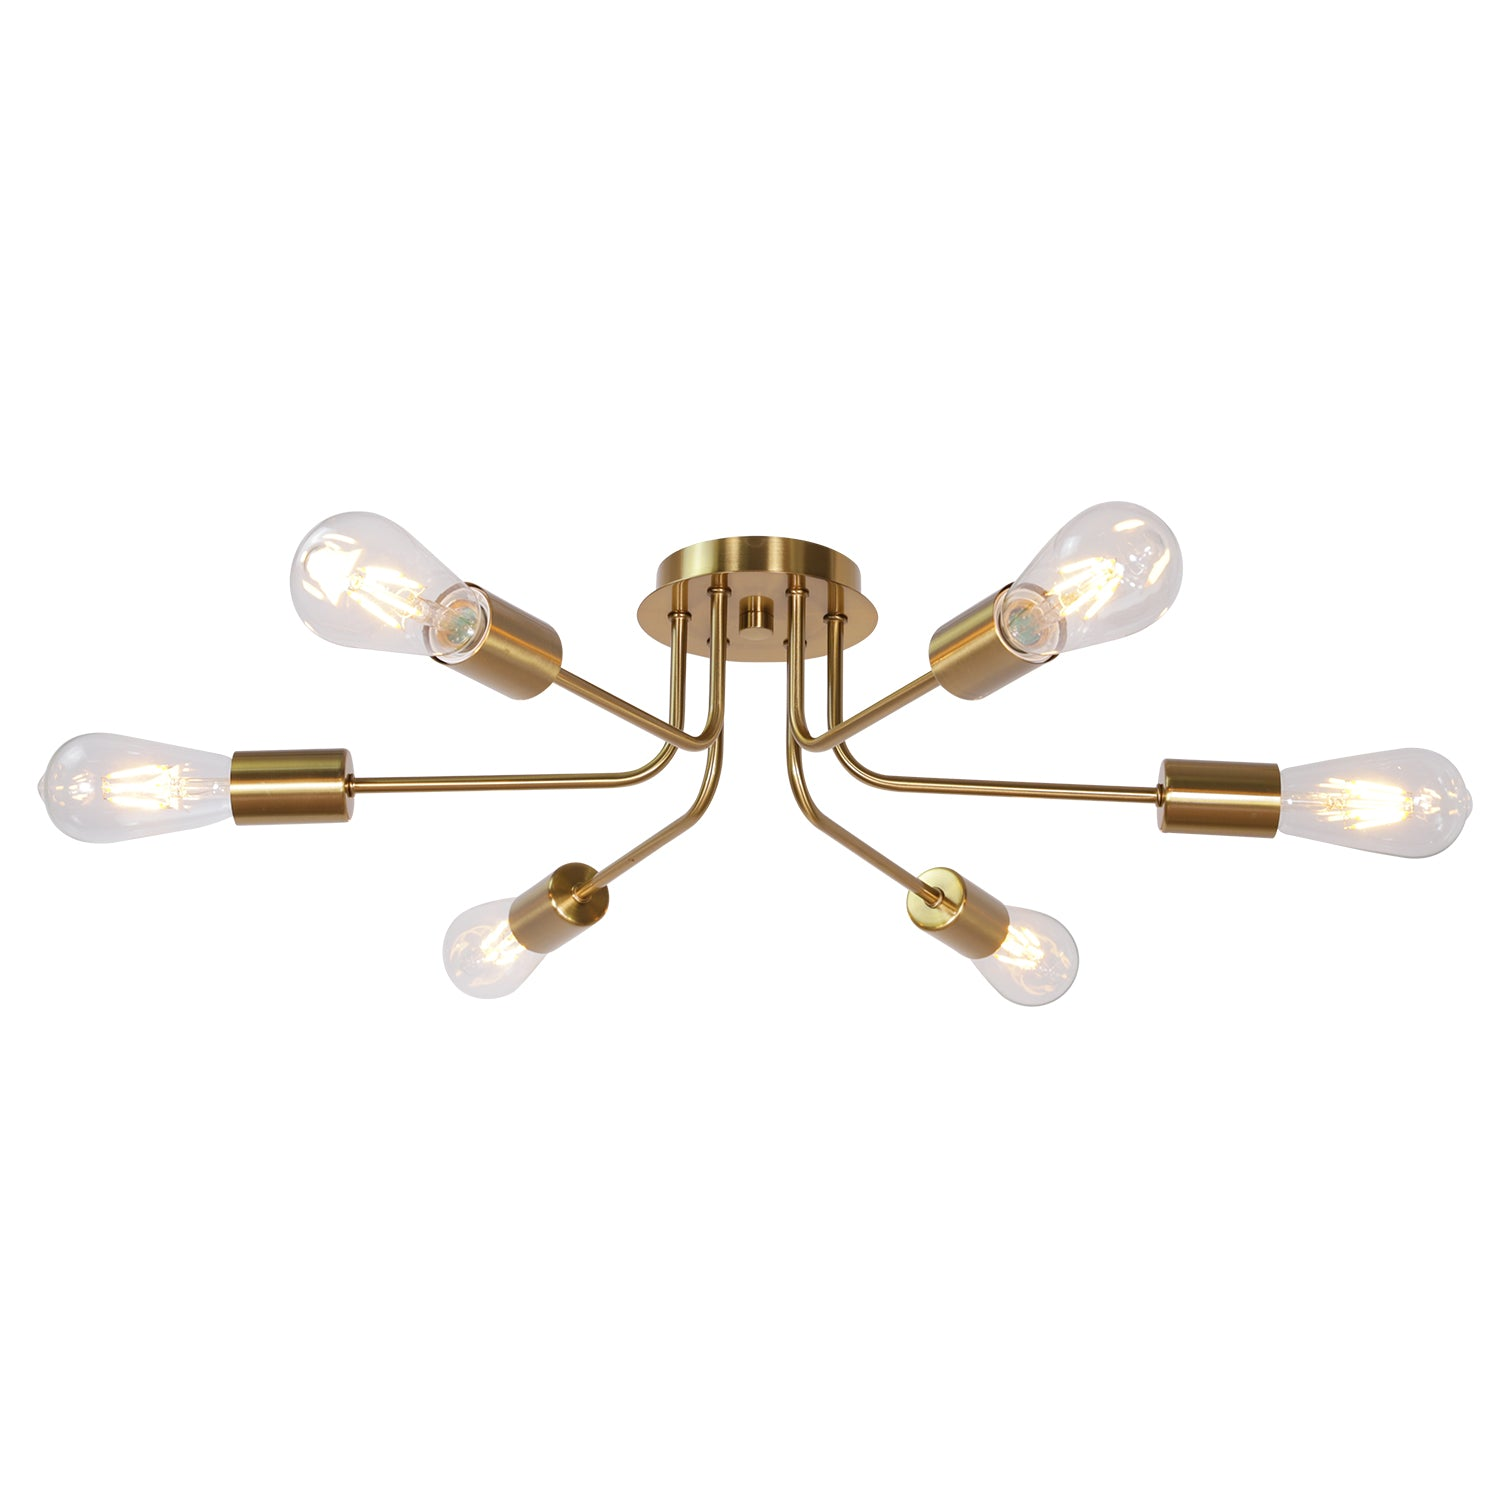 Ceiling Light Fixture Sputnik Light 6 Lights Brass Bedroom Lights Flush Mount Ceiling Light Modern Ceiling Lights Modern Light Fixtures Bonlicht Lighting